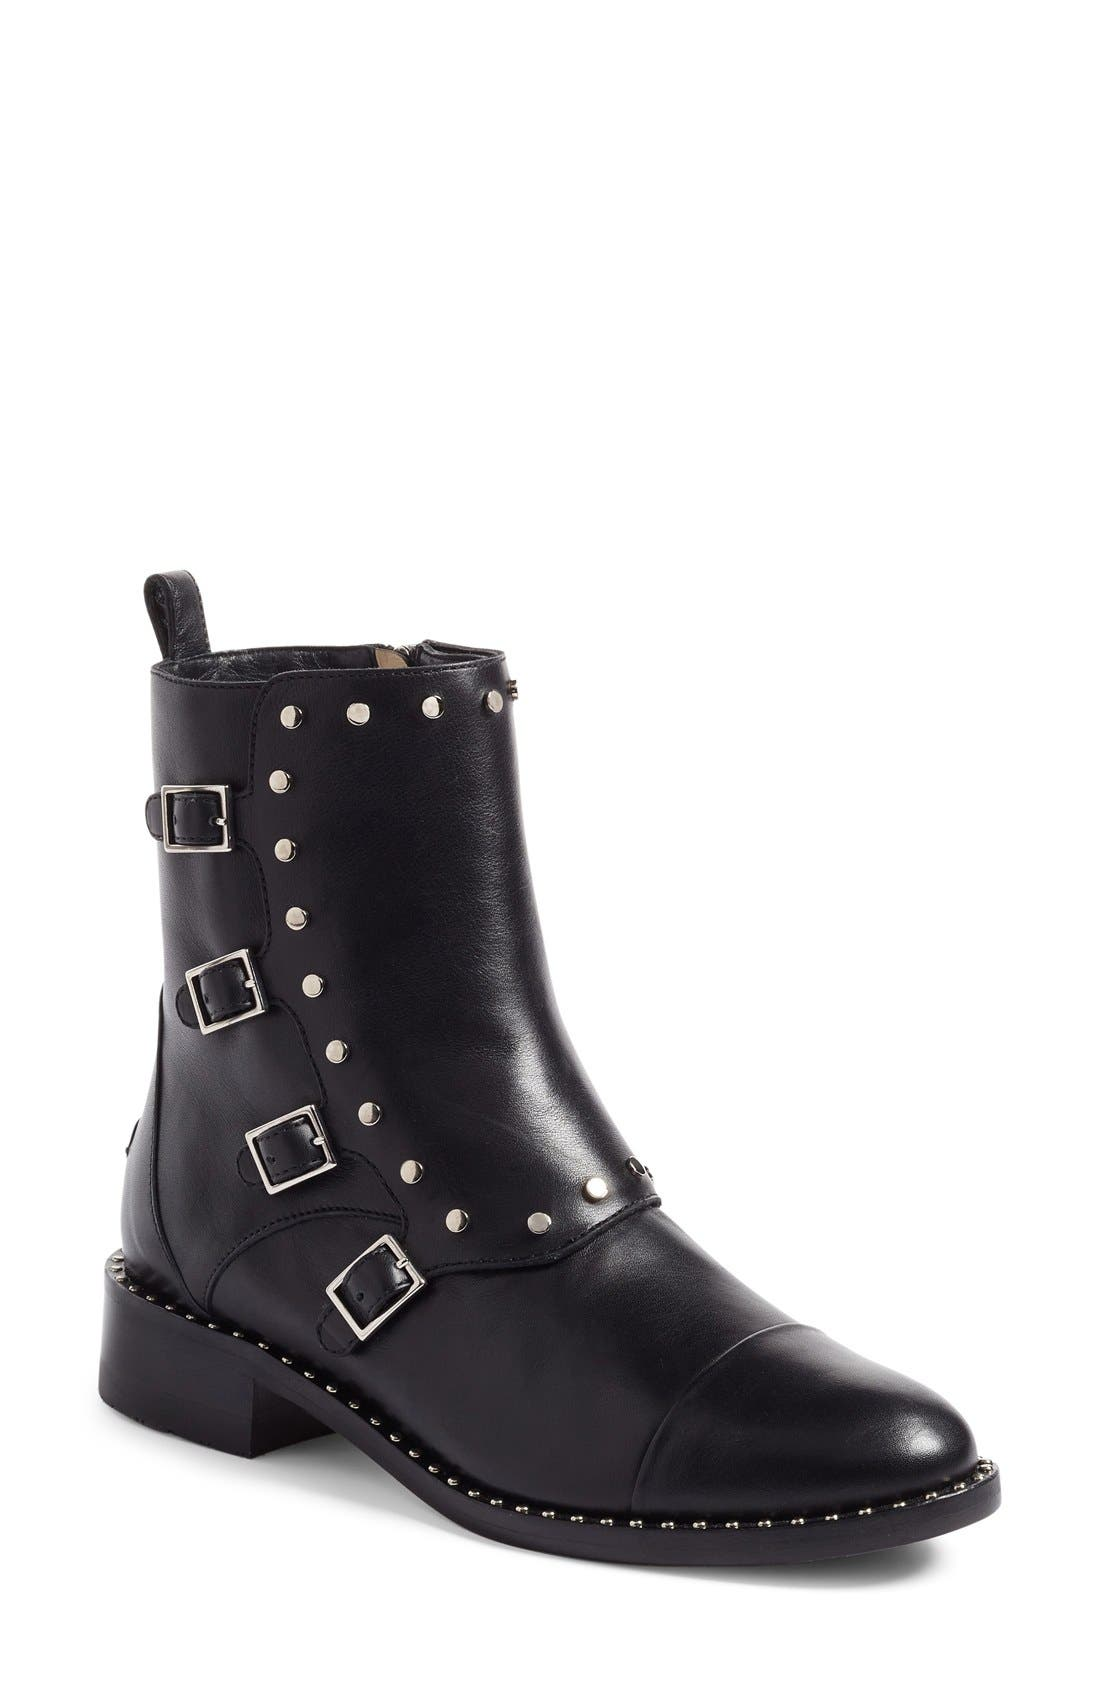 Alternate Image 1 Selected - Jimmy Choo Baxter Combat Boot (Women)